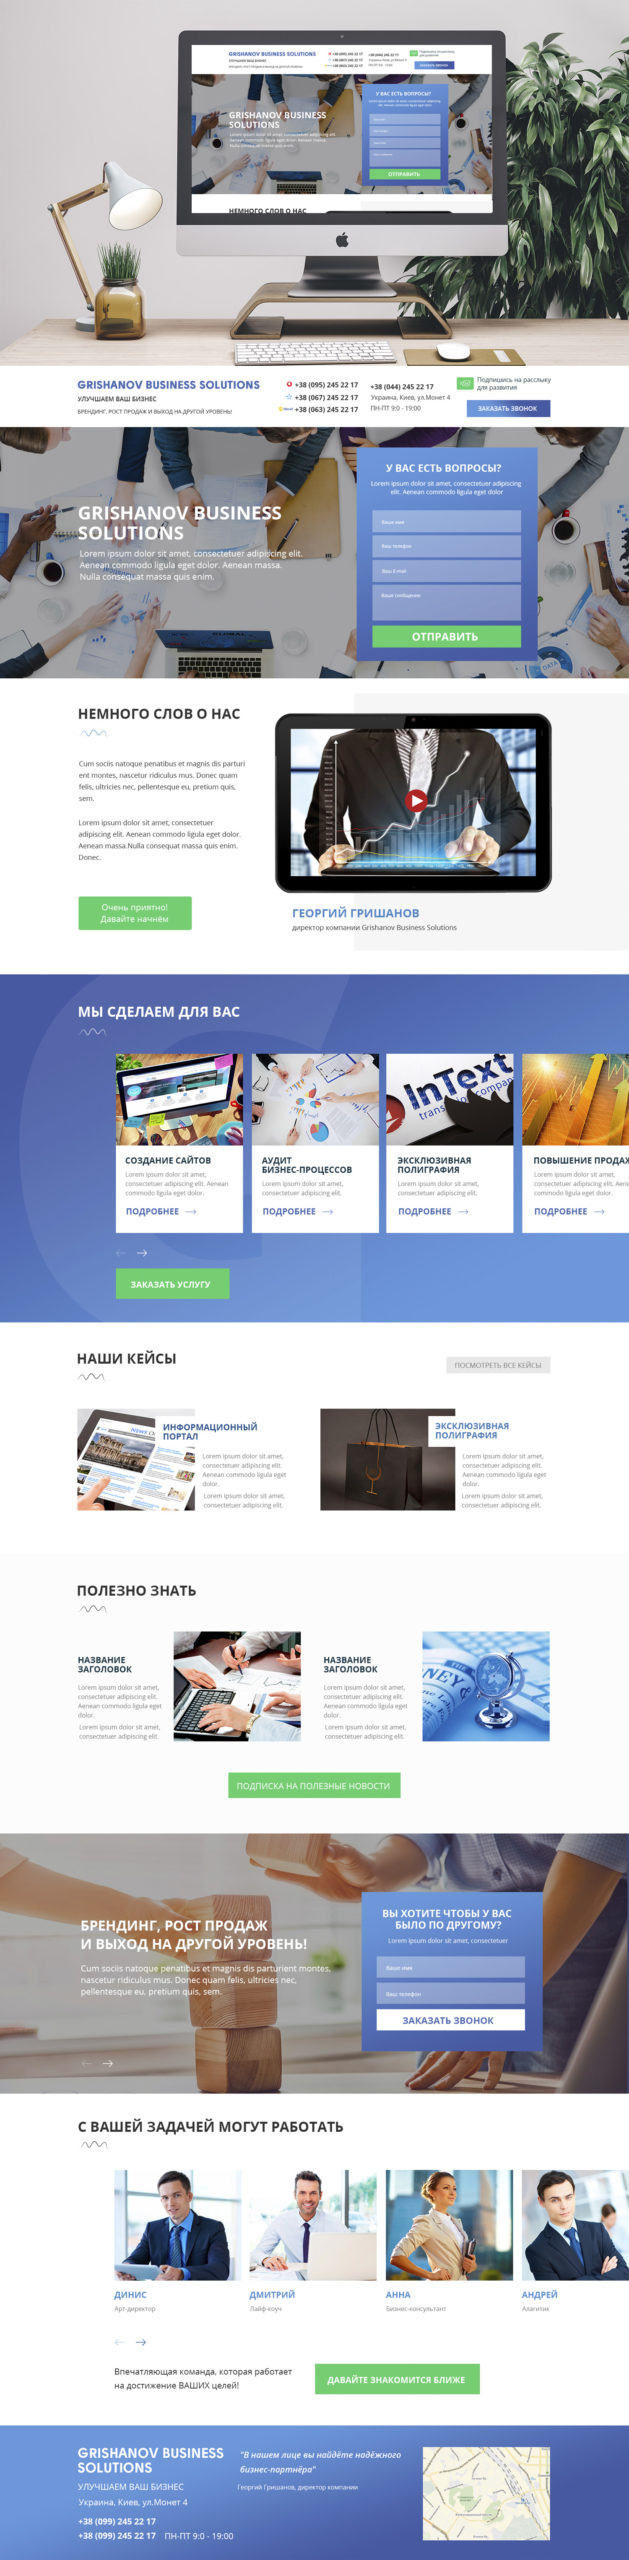 Дизайн сайта - Grishanov Business Solutions